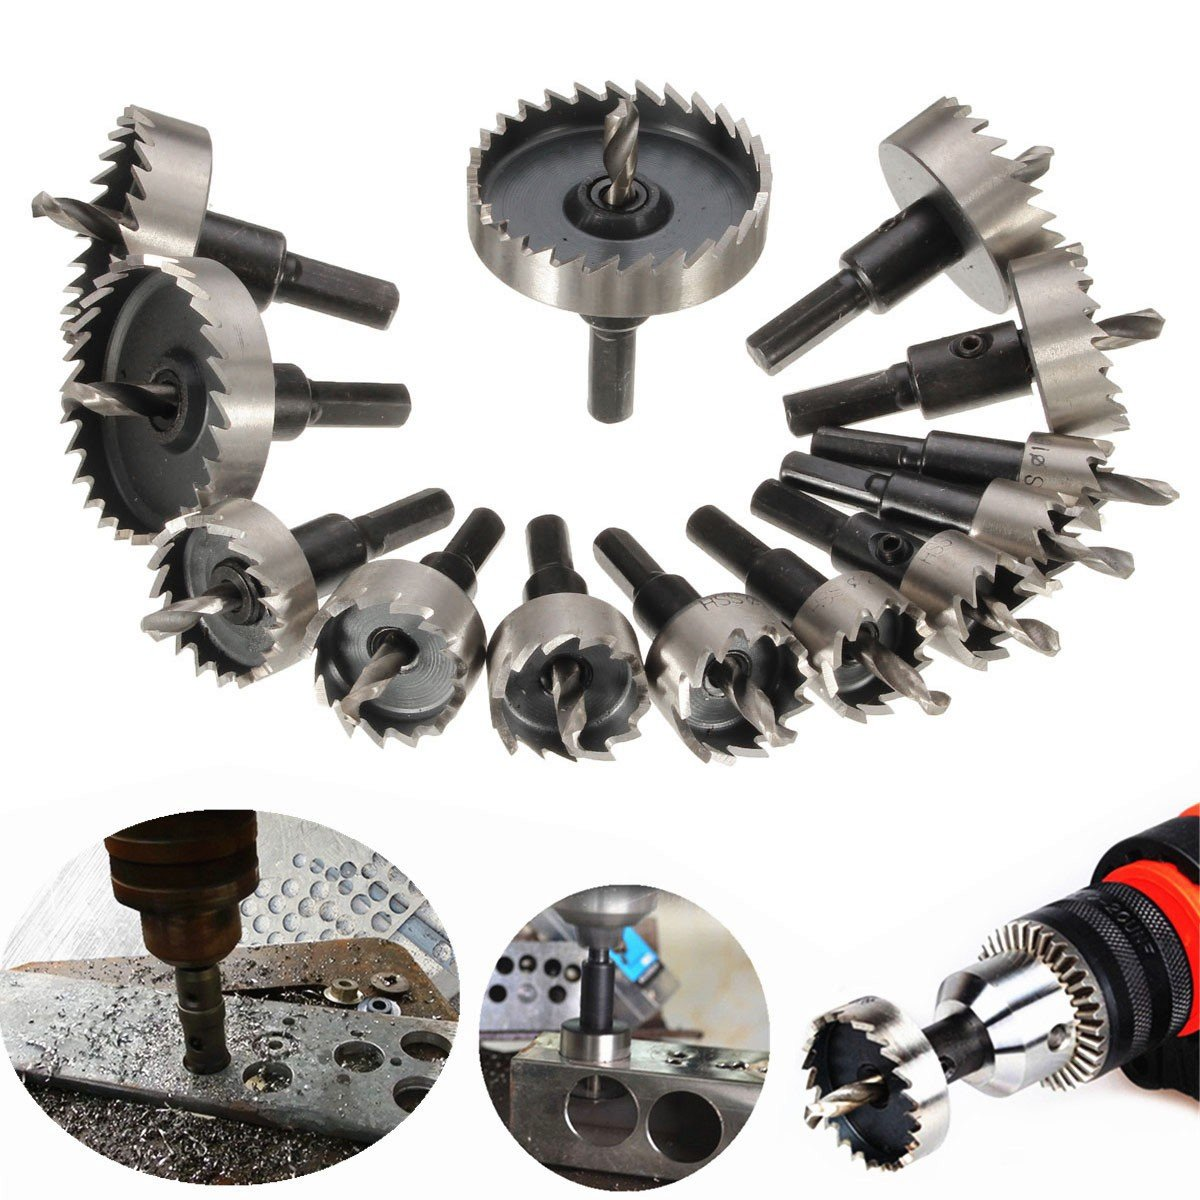 DRILLPRO 13Pcs Hole Saw Kit, HSS Drill Bit Hole Saw Bit Set for Metal, Stainless, 5/8''- 2 1/9'' by DRILLPRO